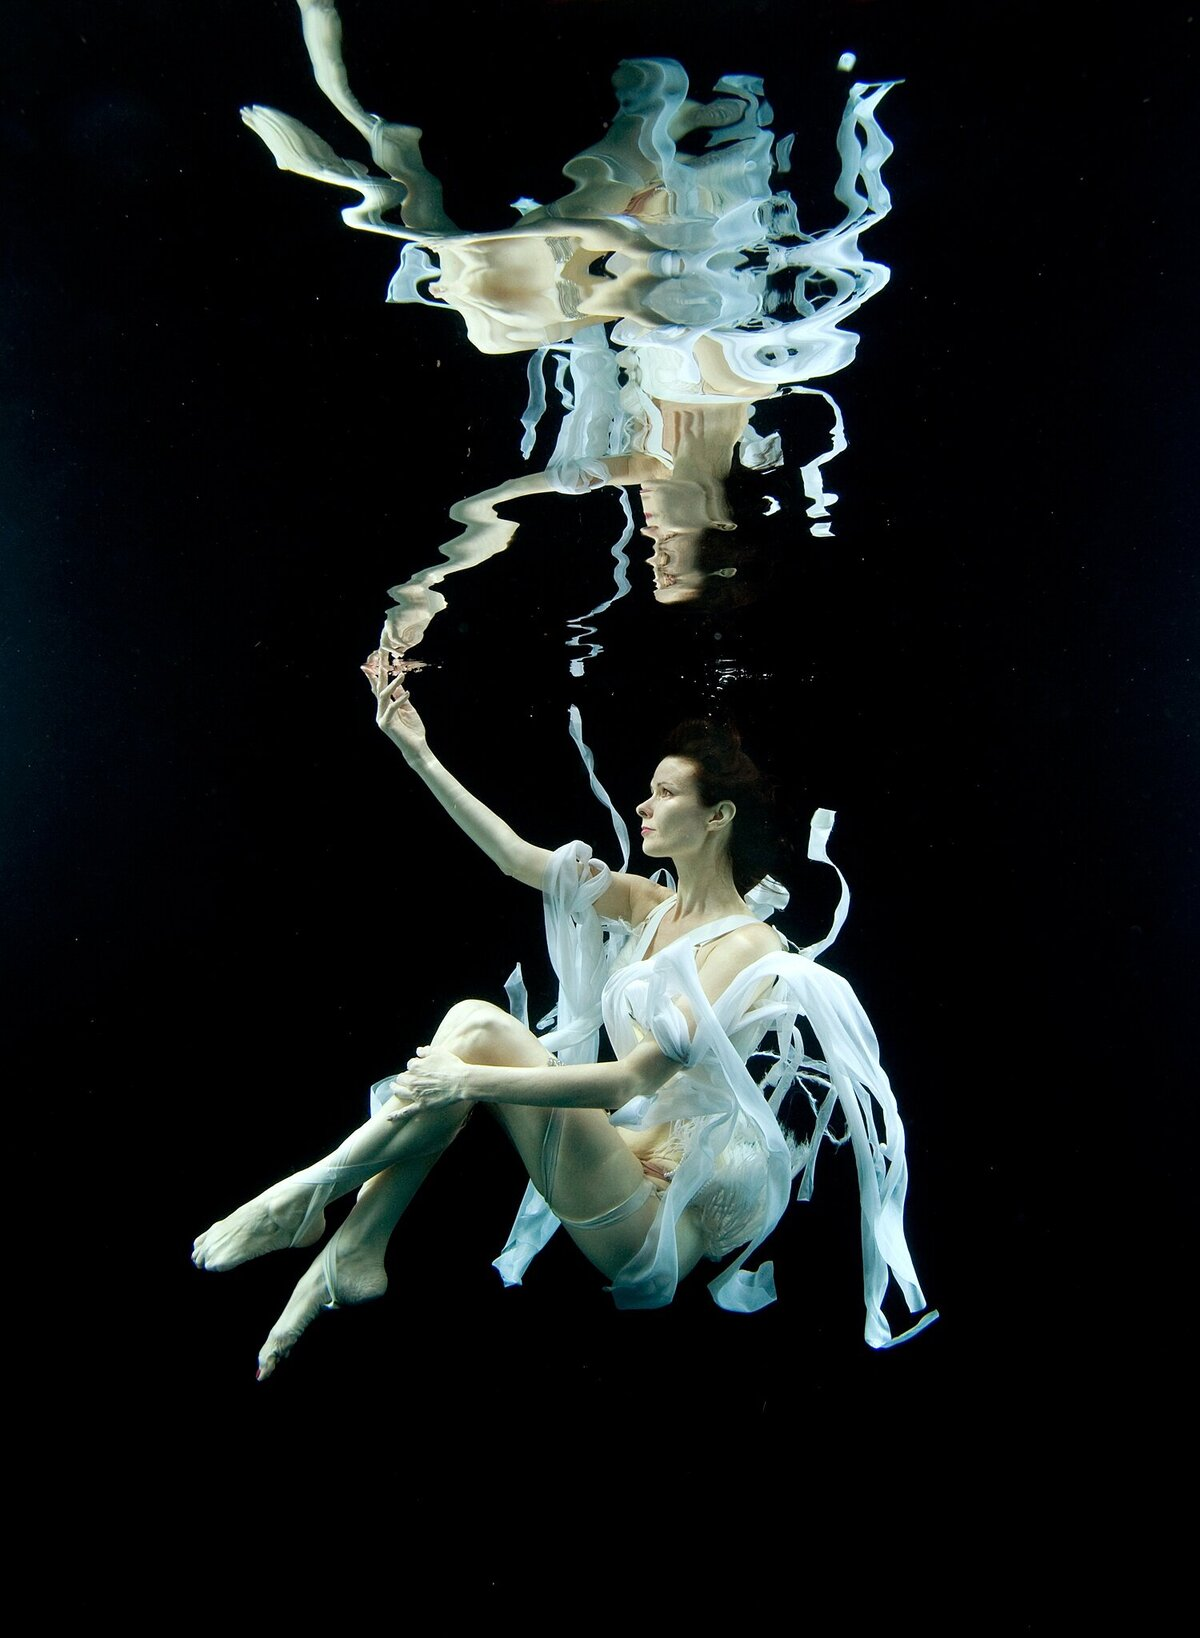 Underwater-New-York-photographer-036